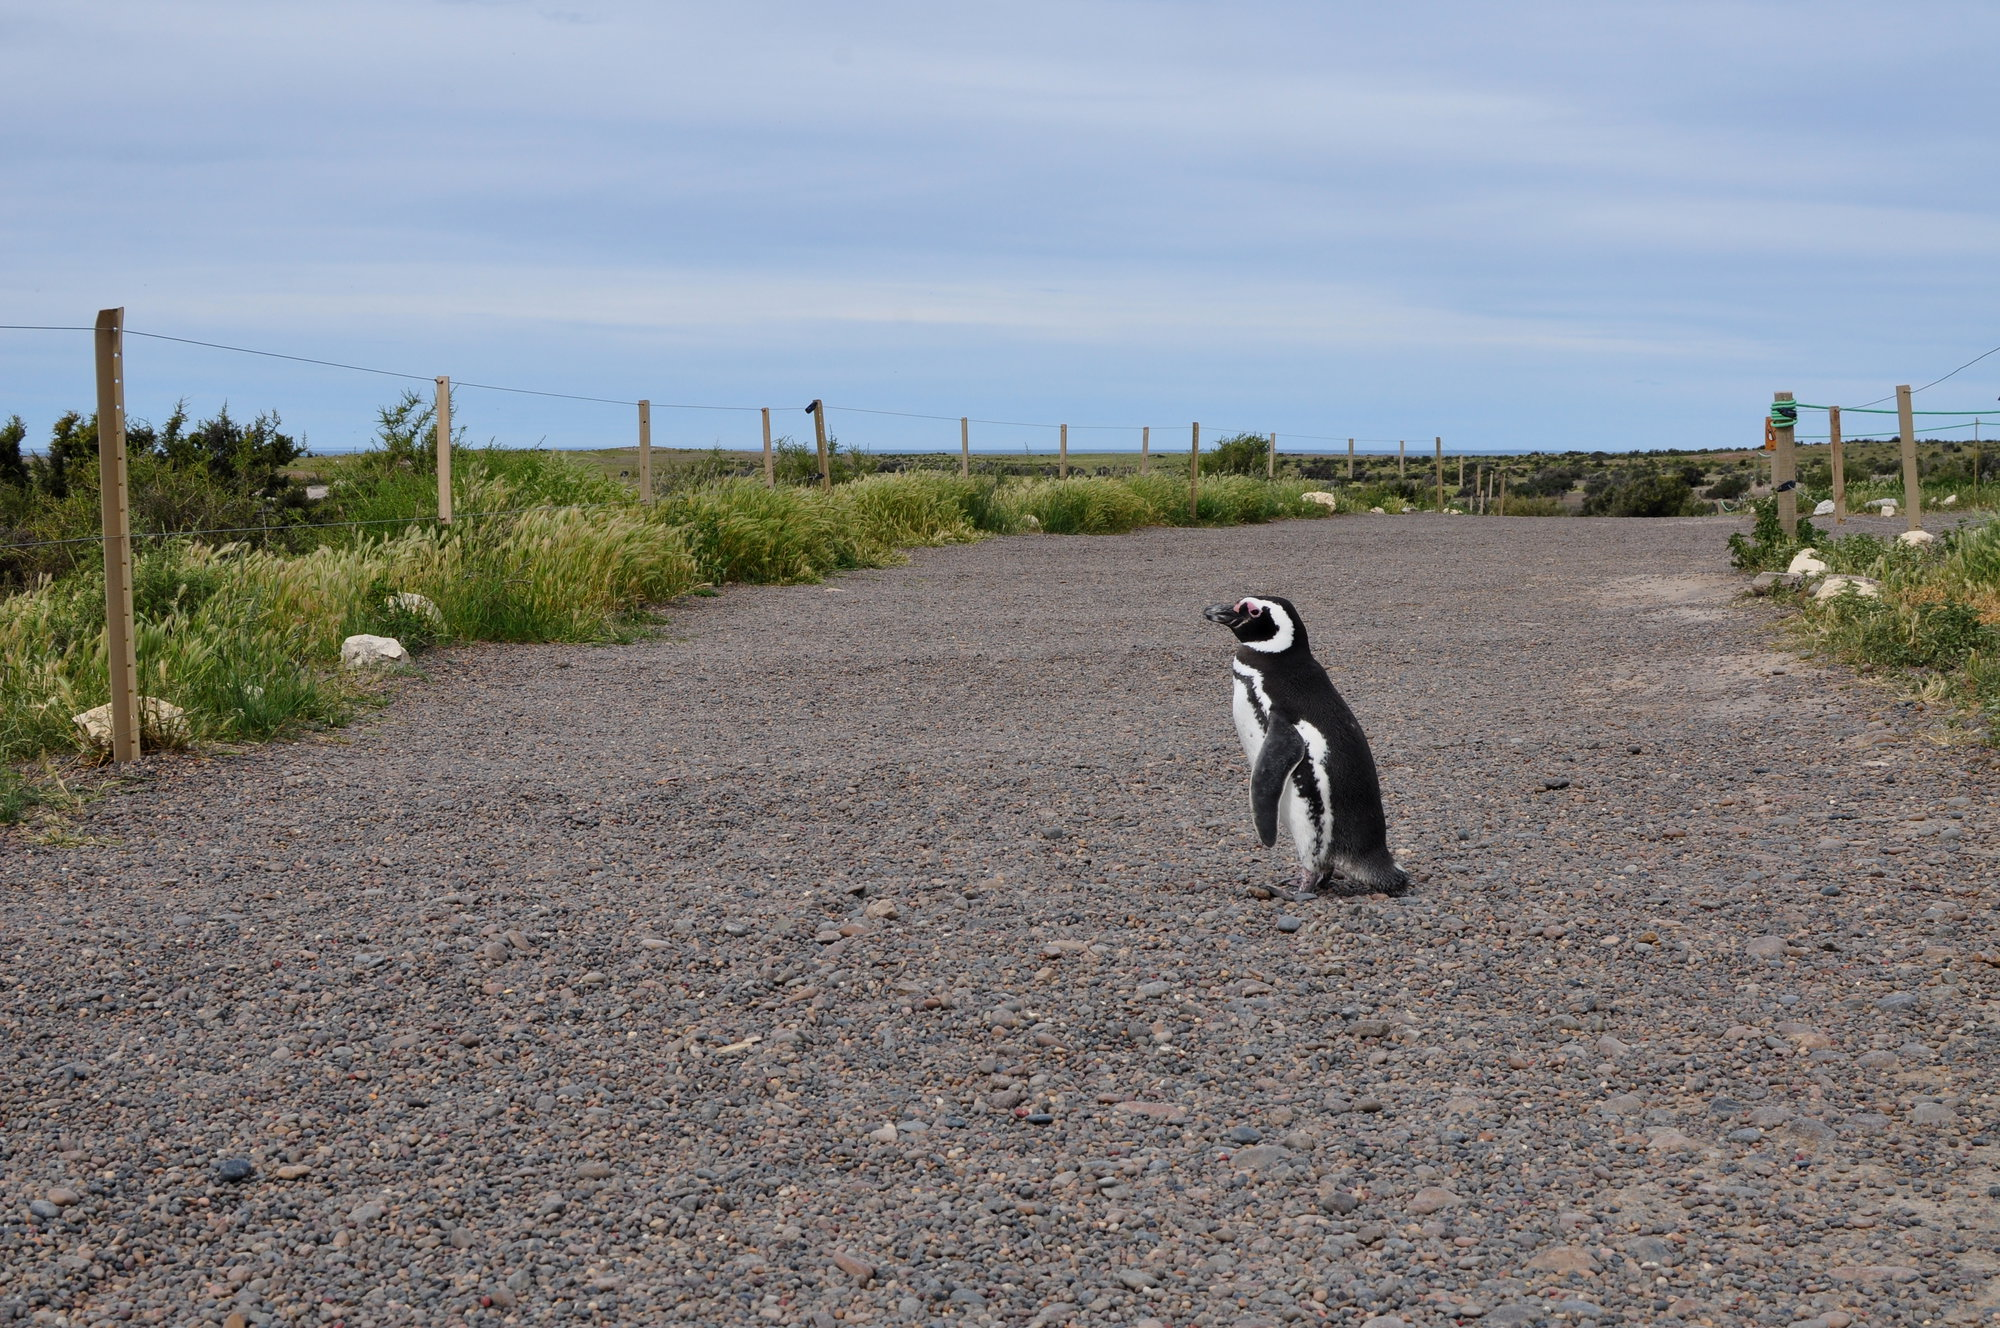 Argentina, Patagona – Isla Pavón and Trip to See Penguins